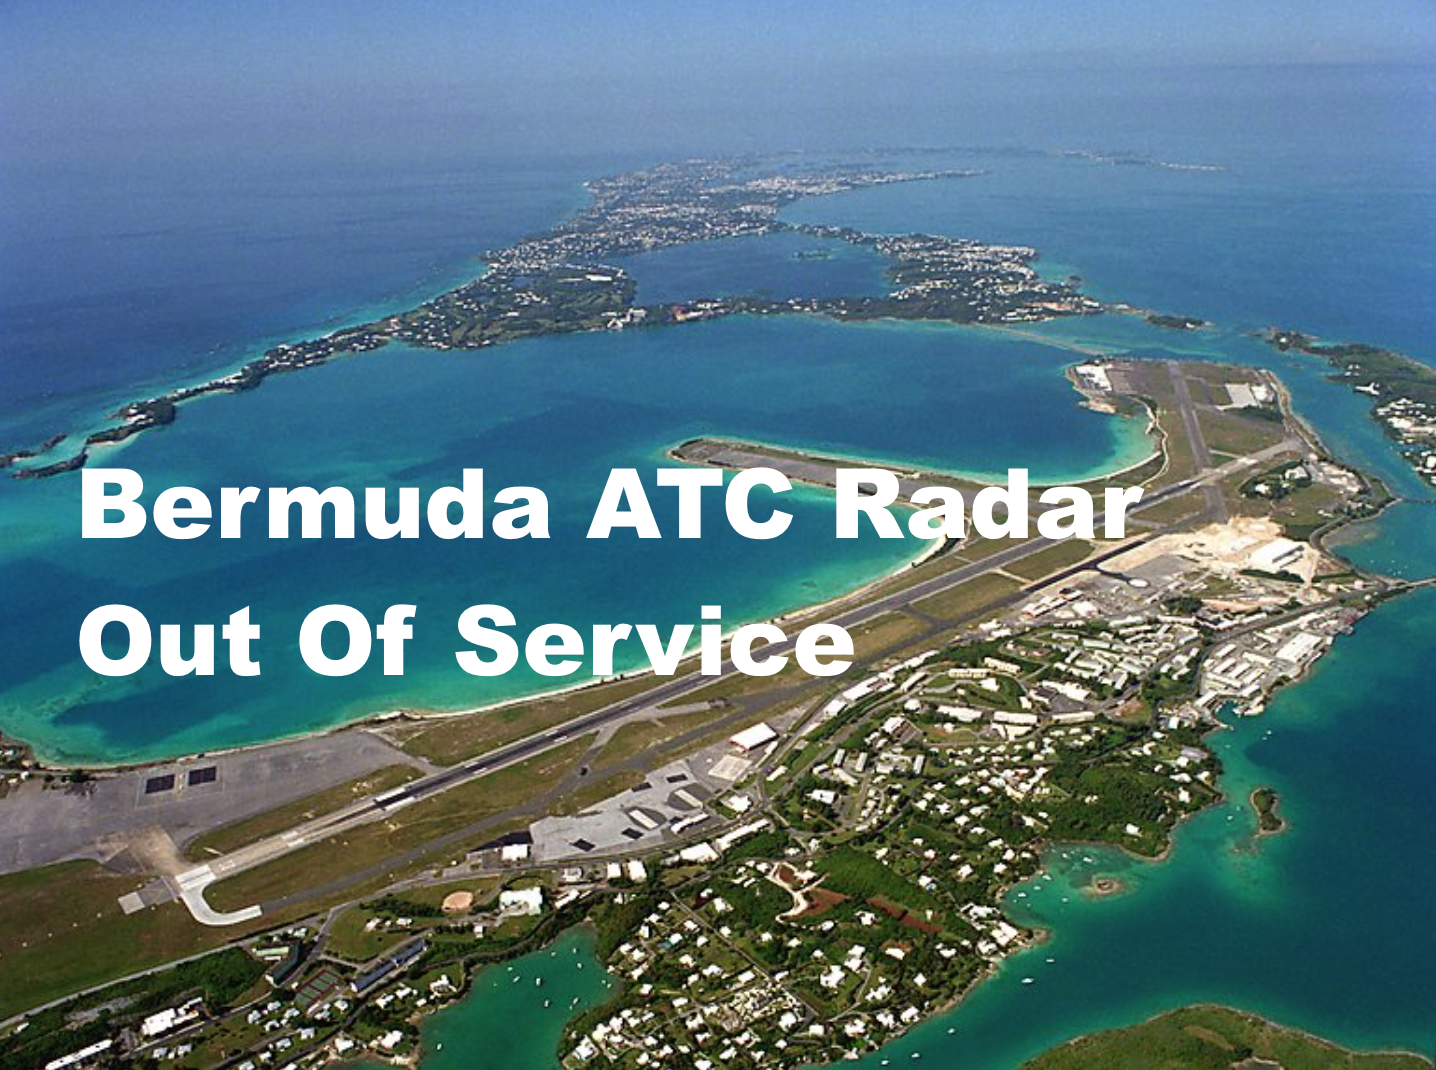 Bermuda ATC Radar Out Of Service all week